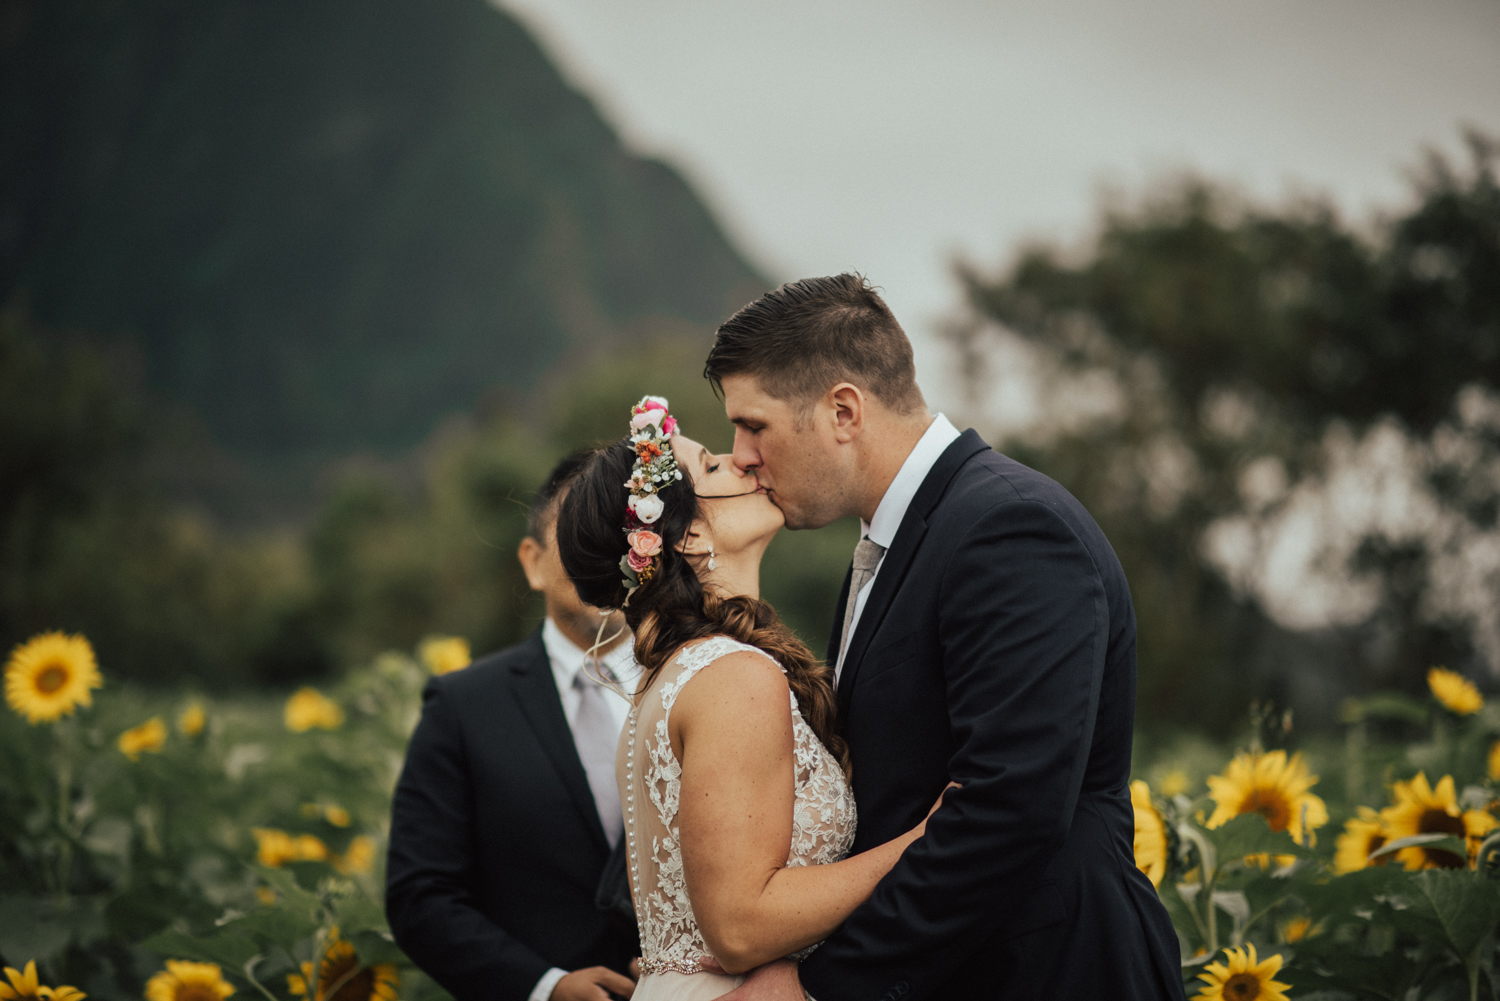 adventurous-Hawaii-elopement-photographers-52.jpg